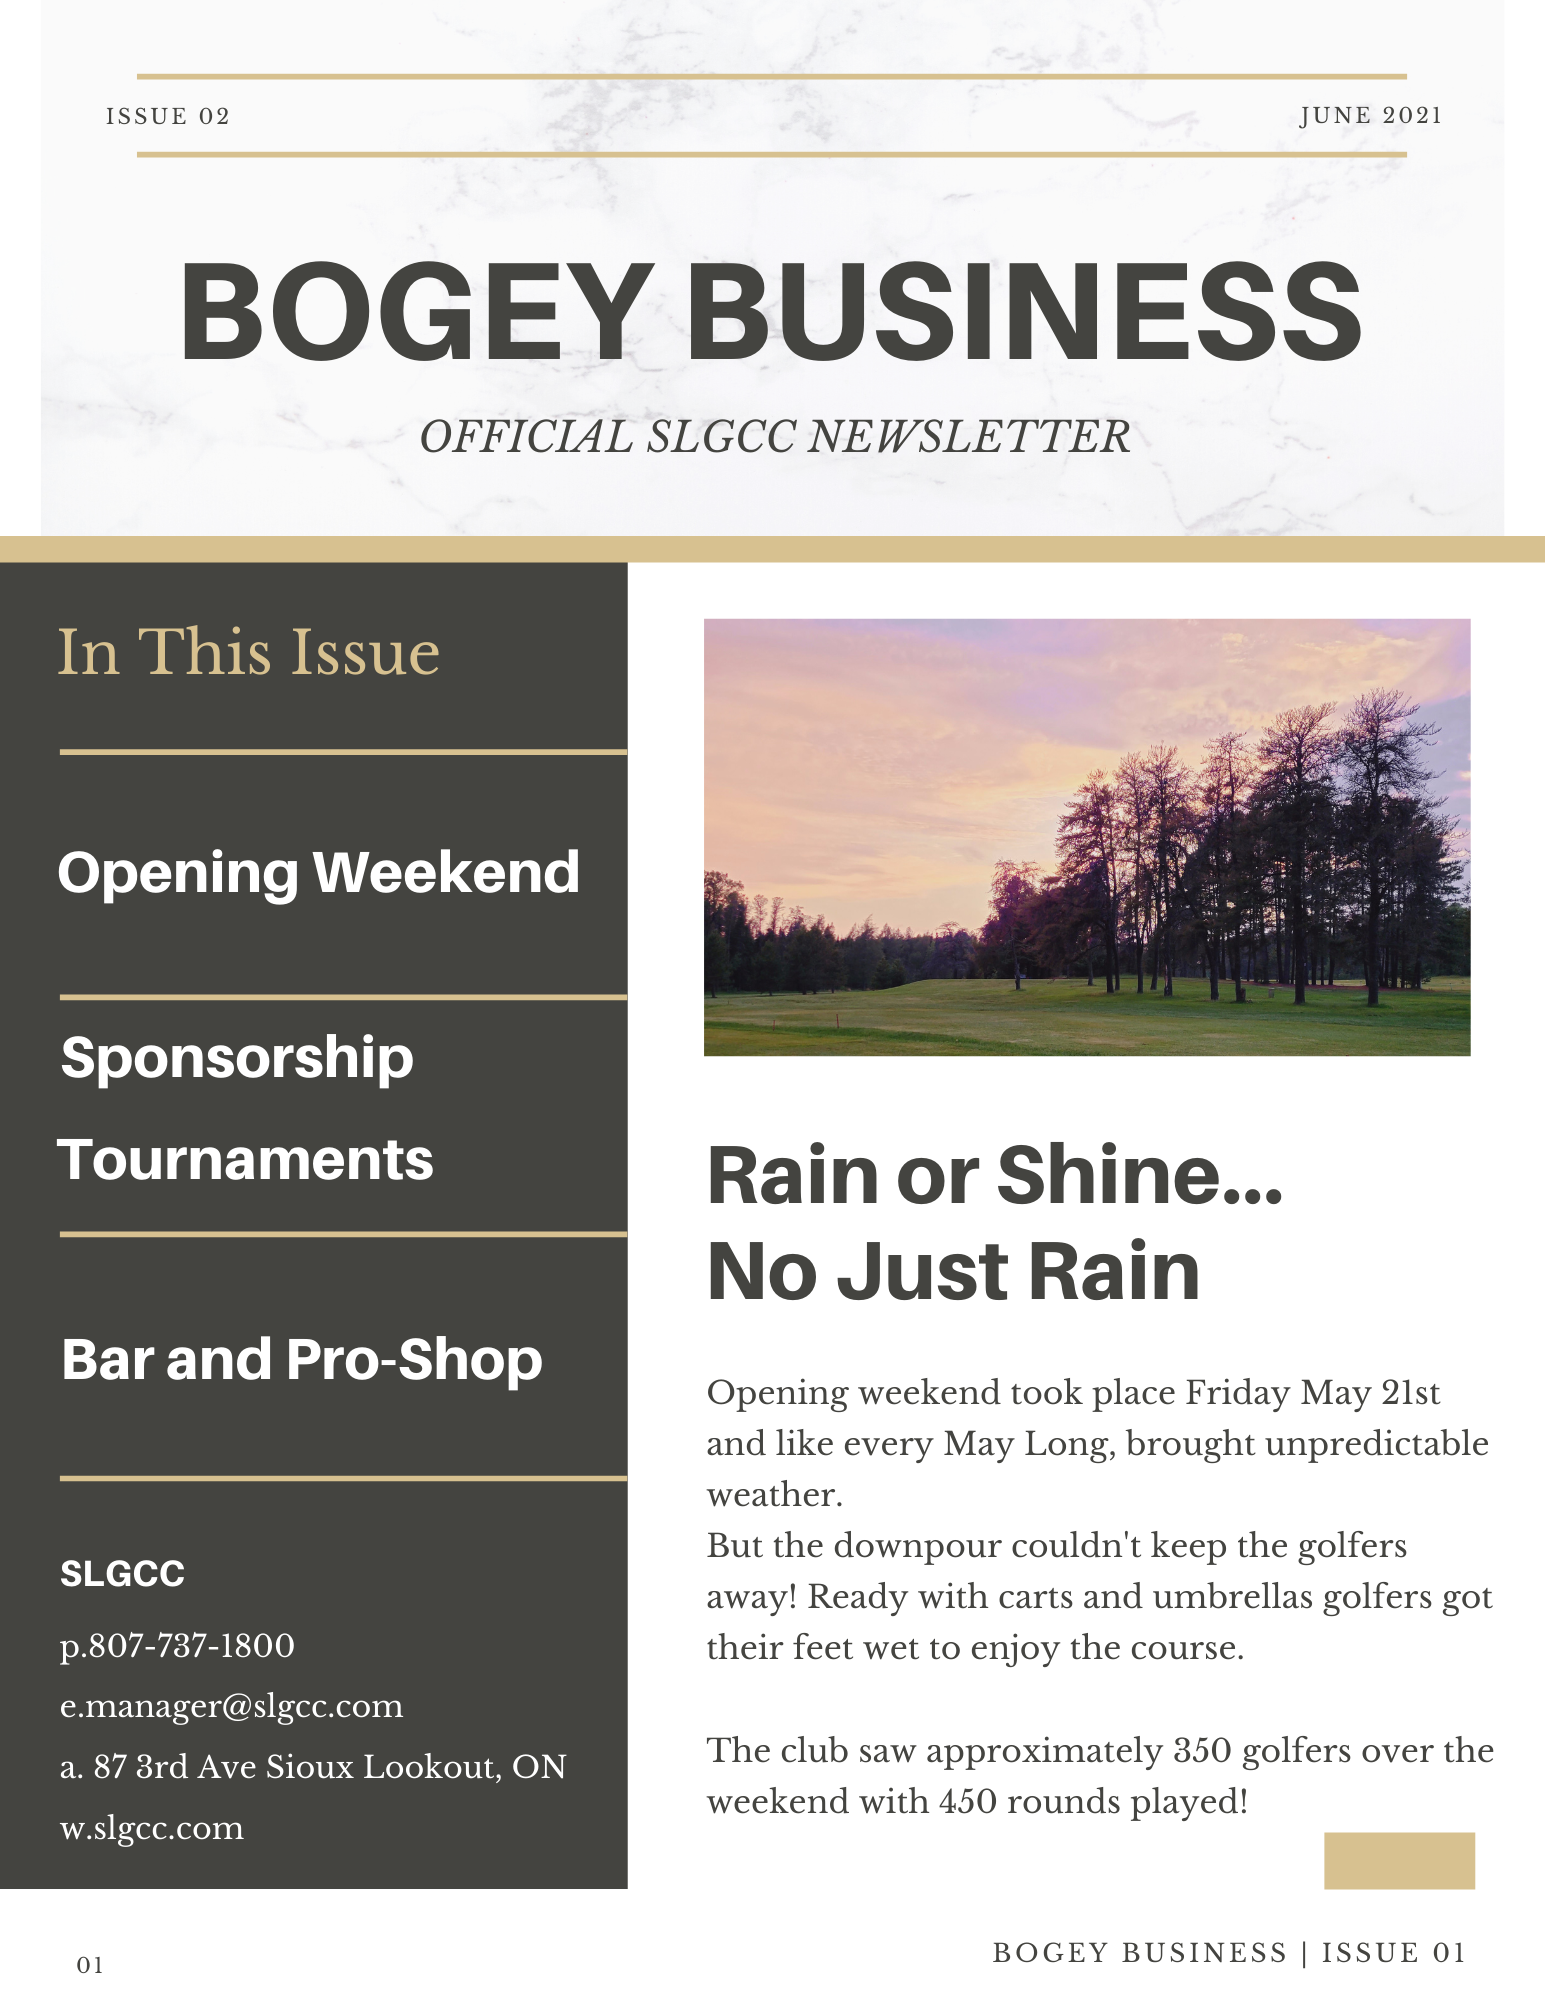 Bogey Business Issue 02